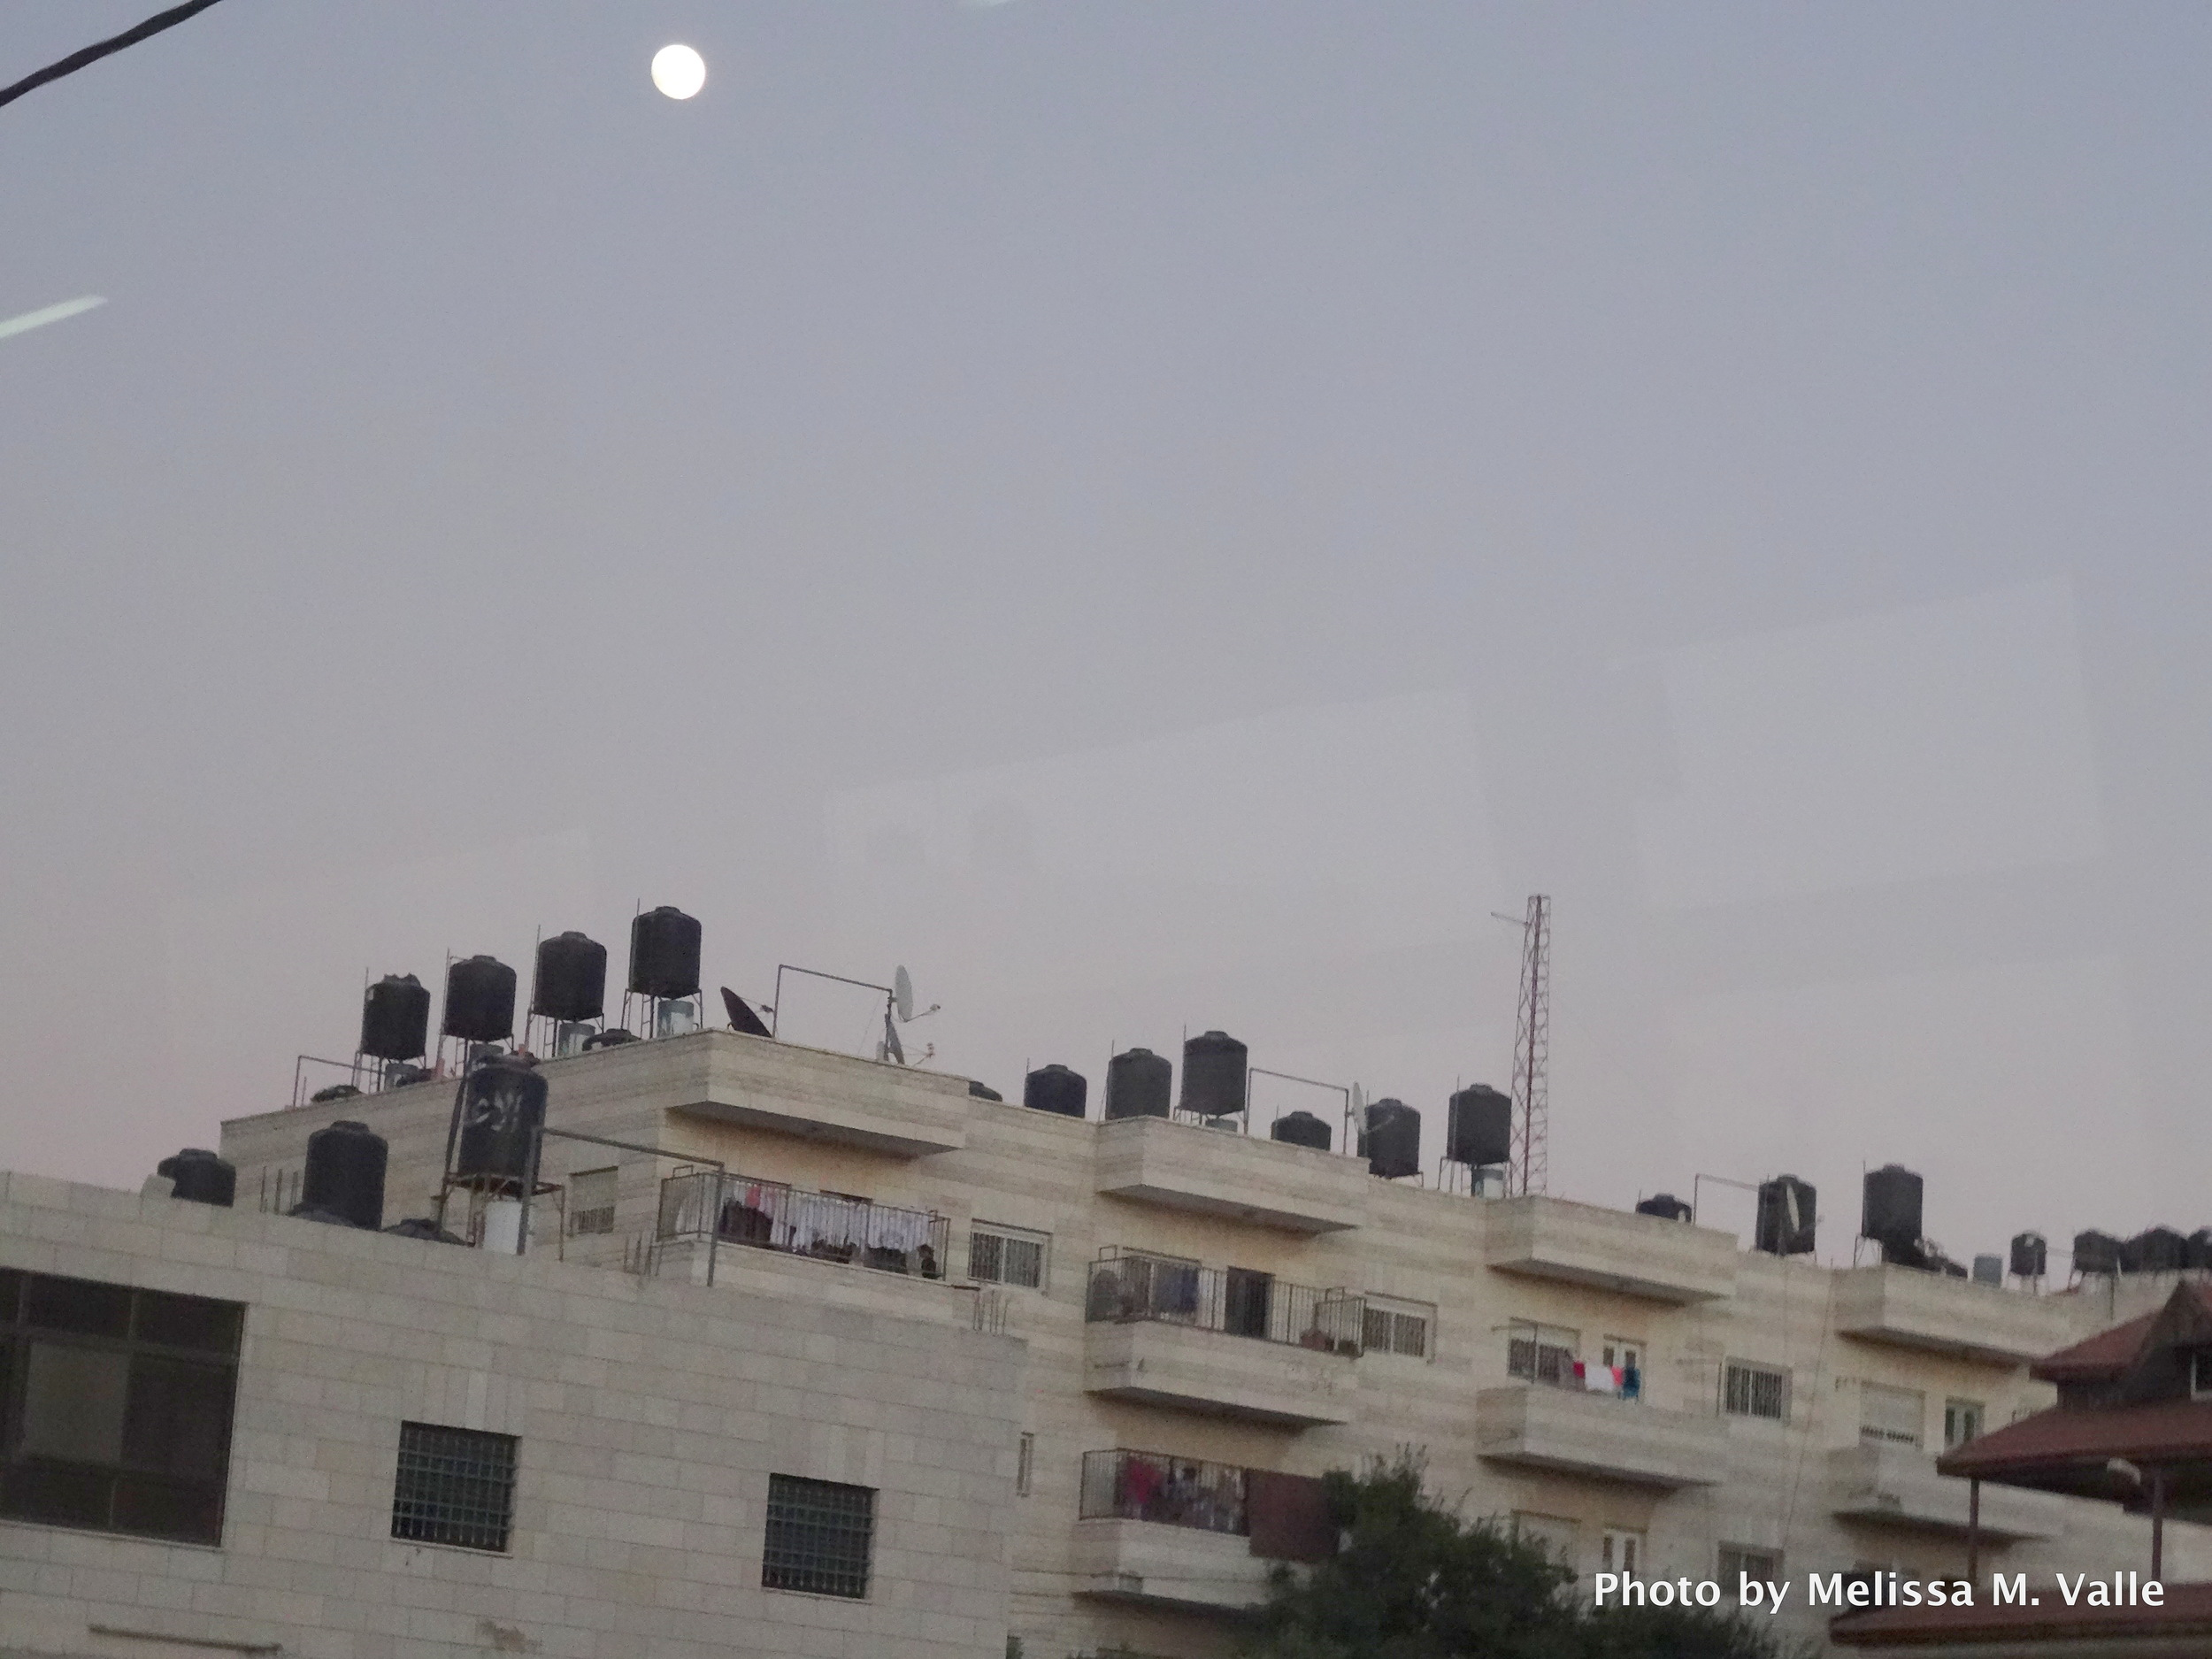 Water cisterns atop roofs in Palestine